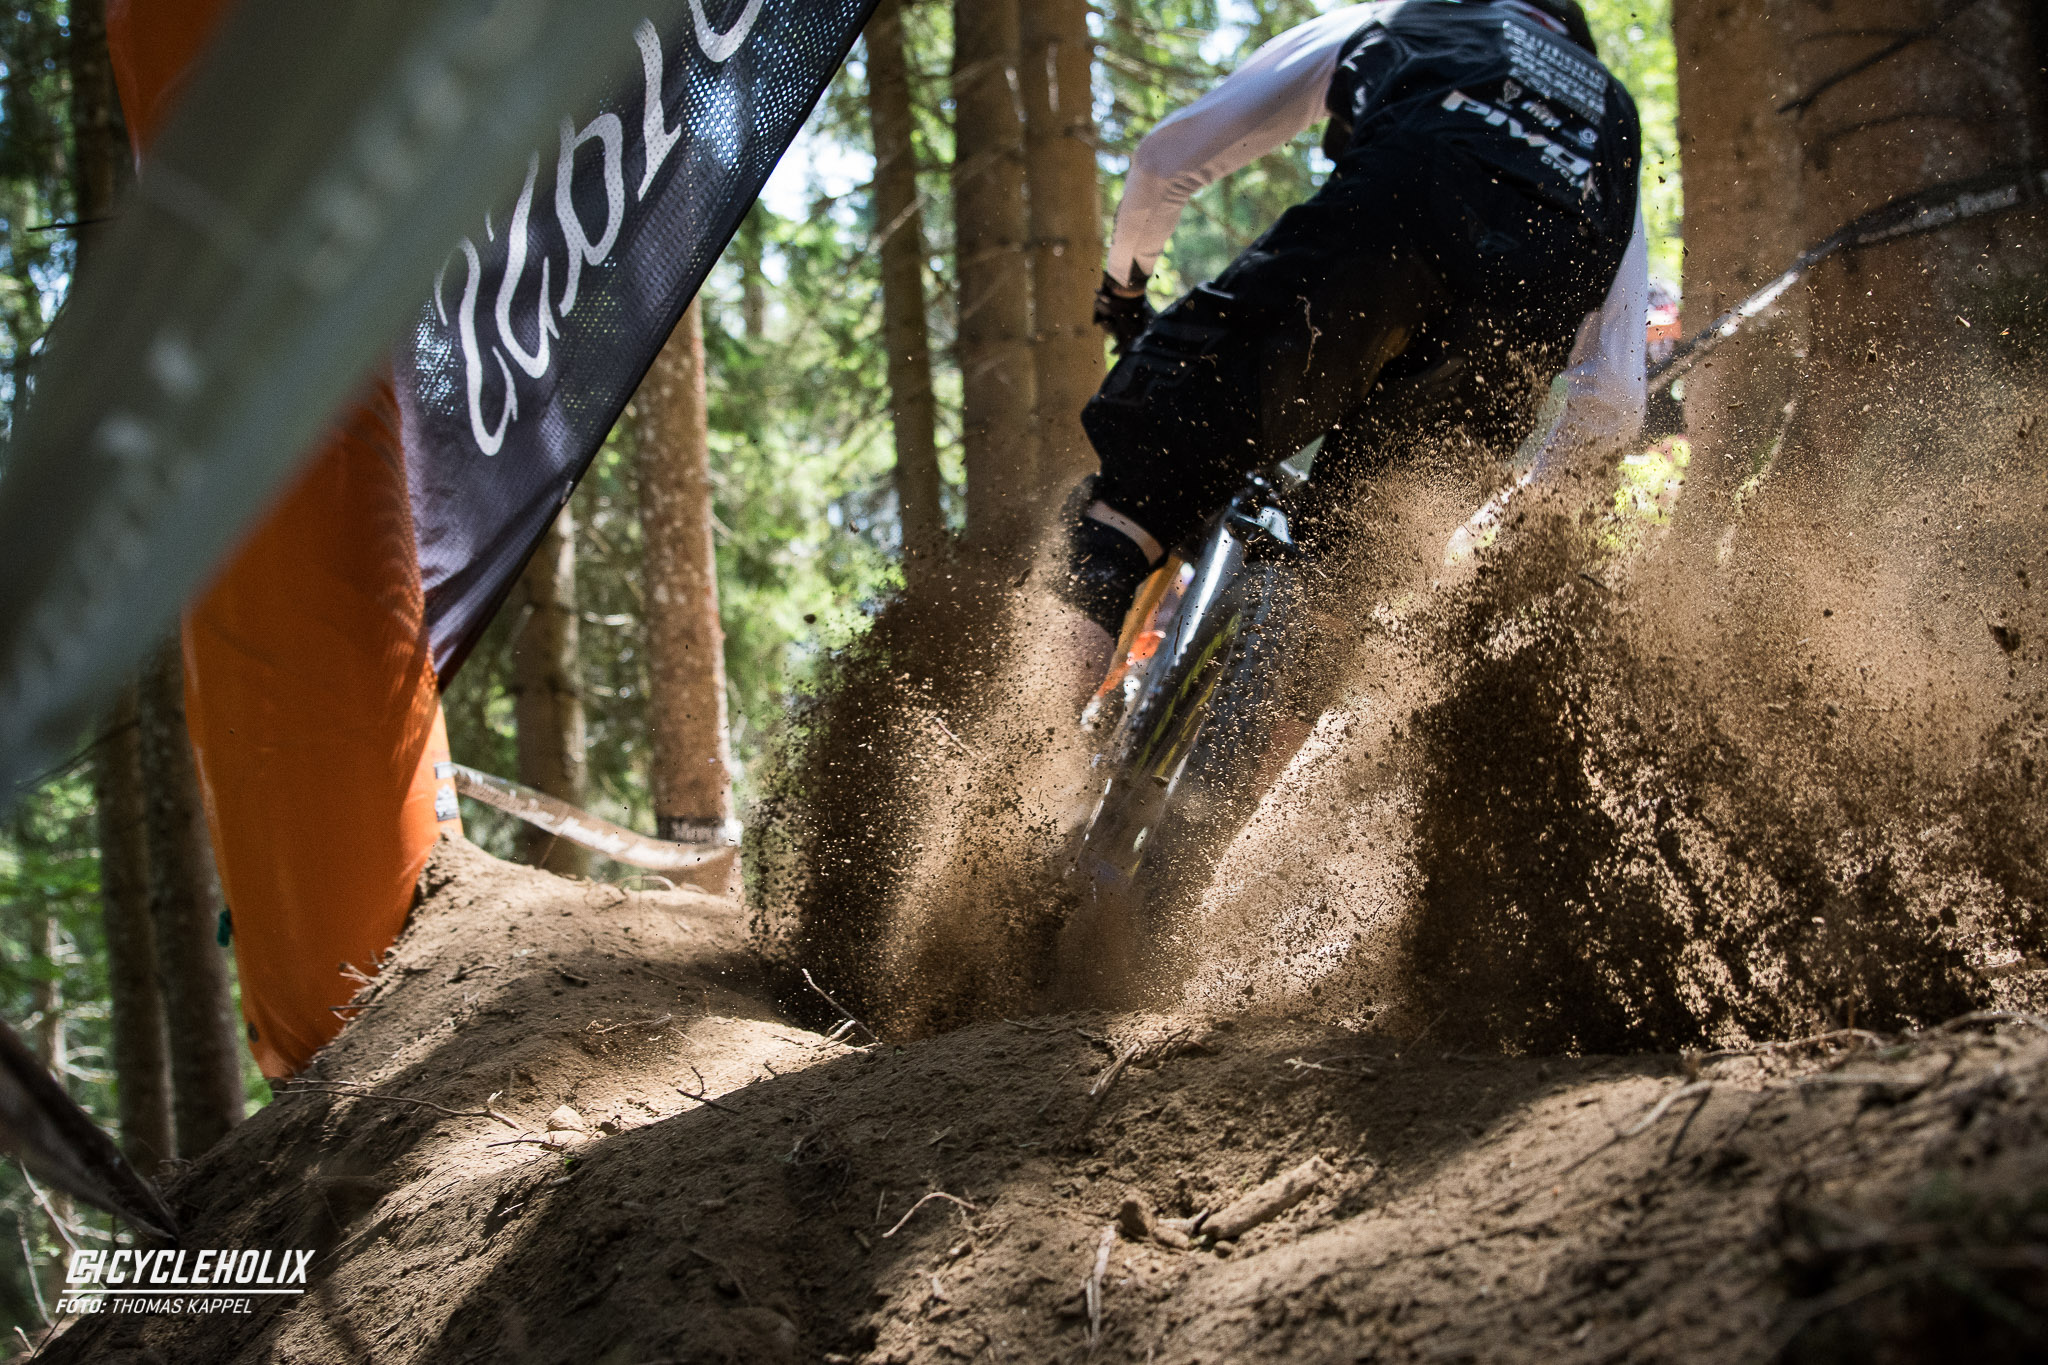 2019 Downhill Worldcup Leogang Finale Action 18